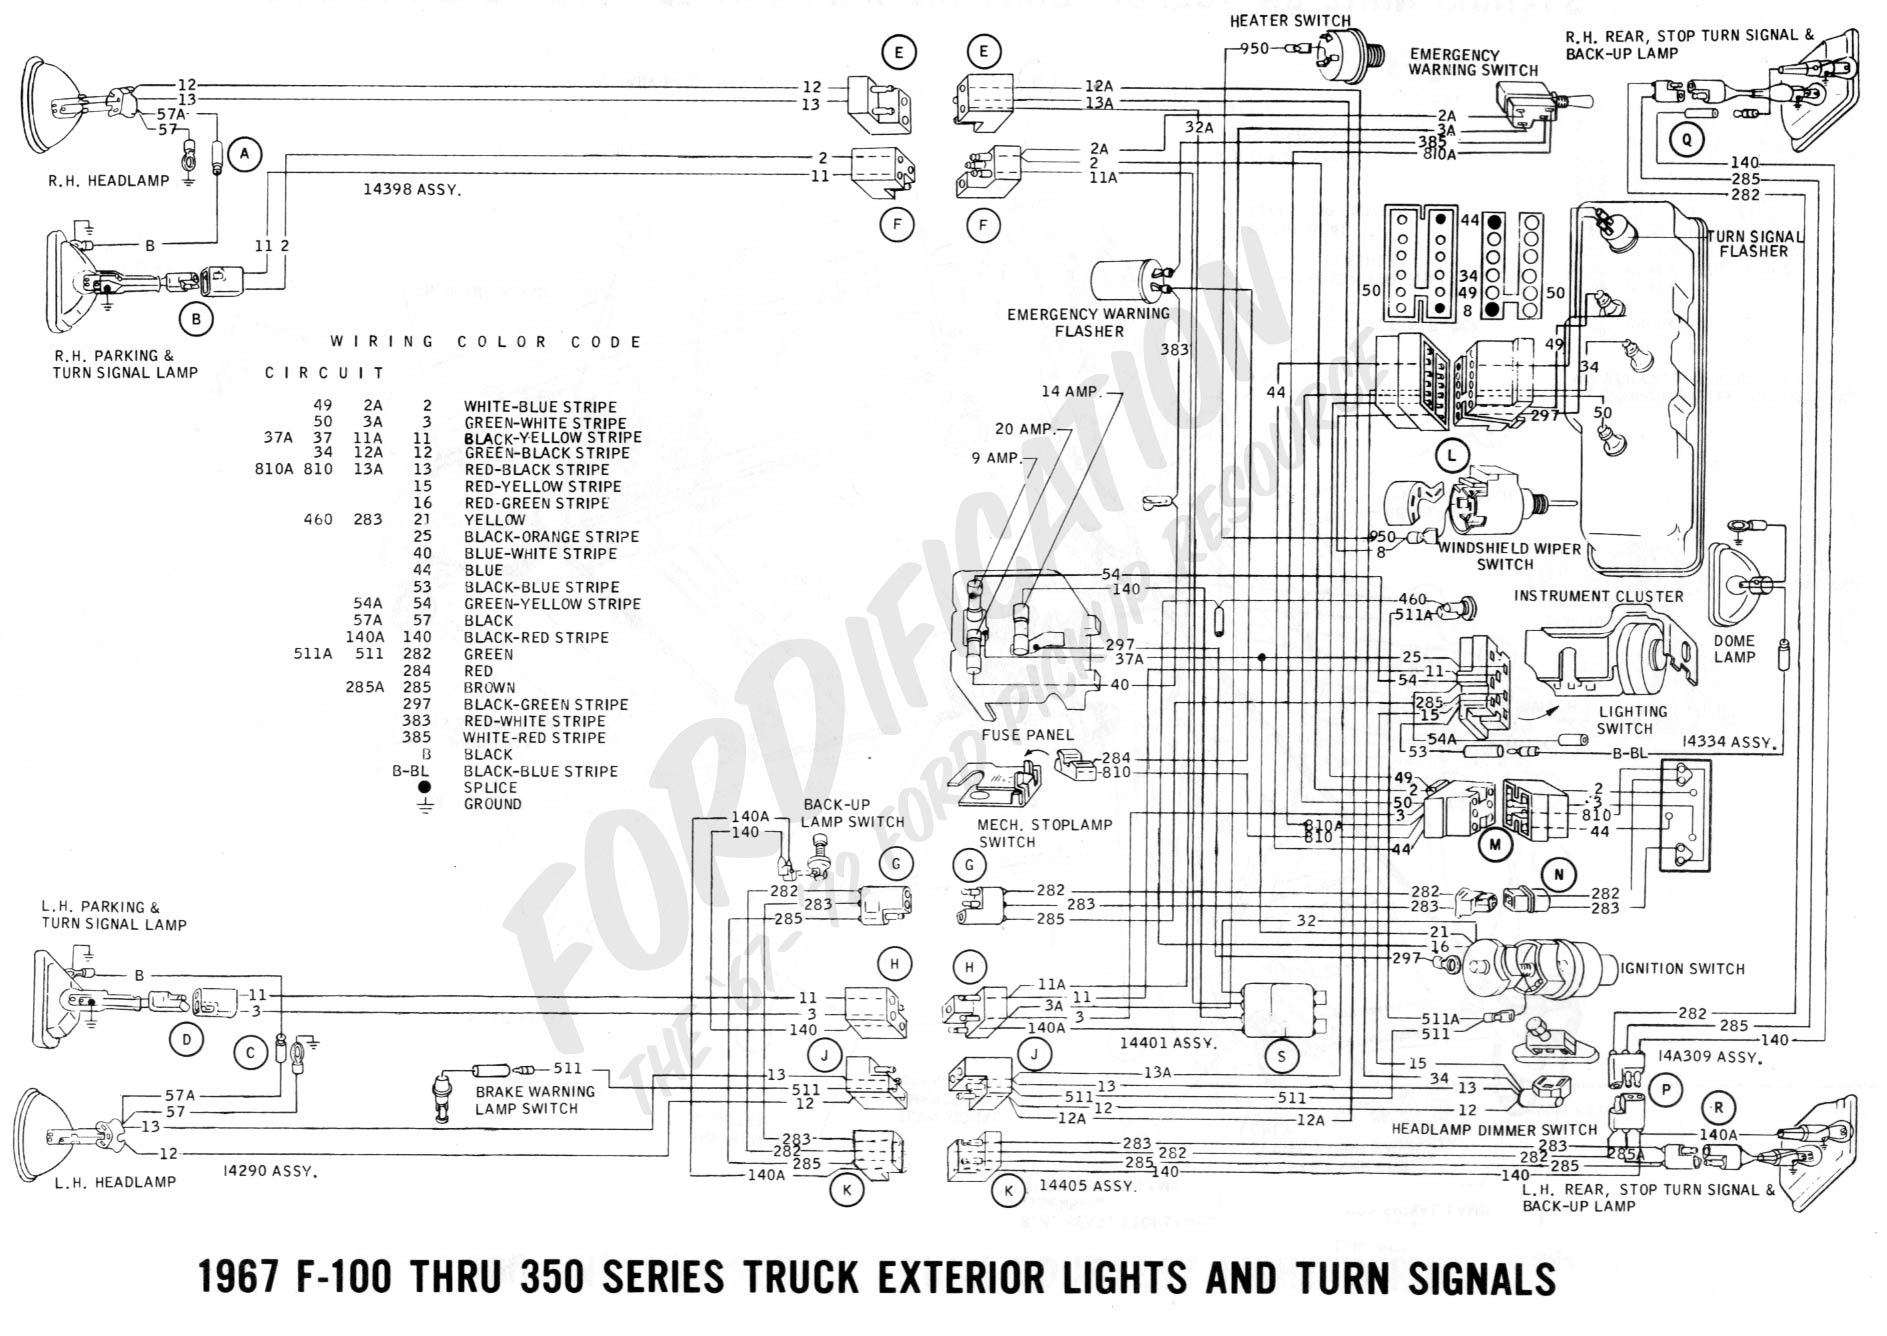 hight resolution of 2006 ford truck wiring diagram simple wiring diagram rh david huggett co uk wiring diagram ford